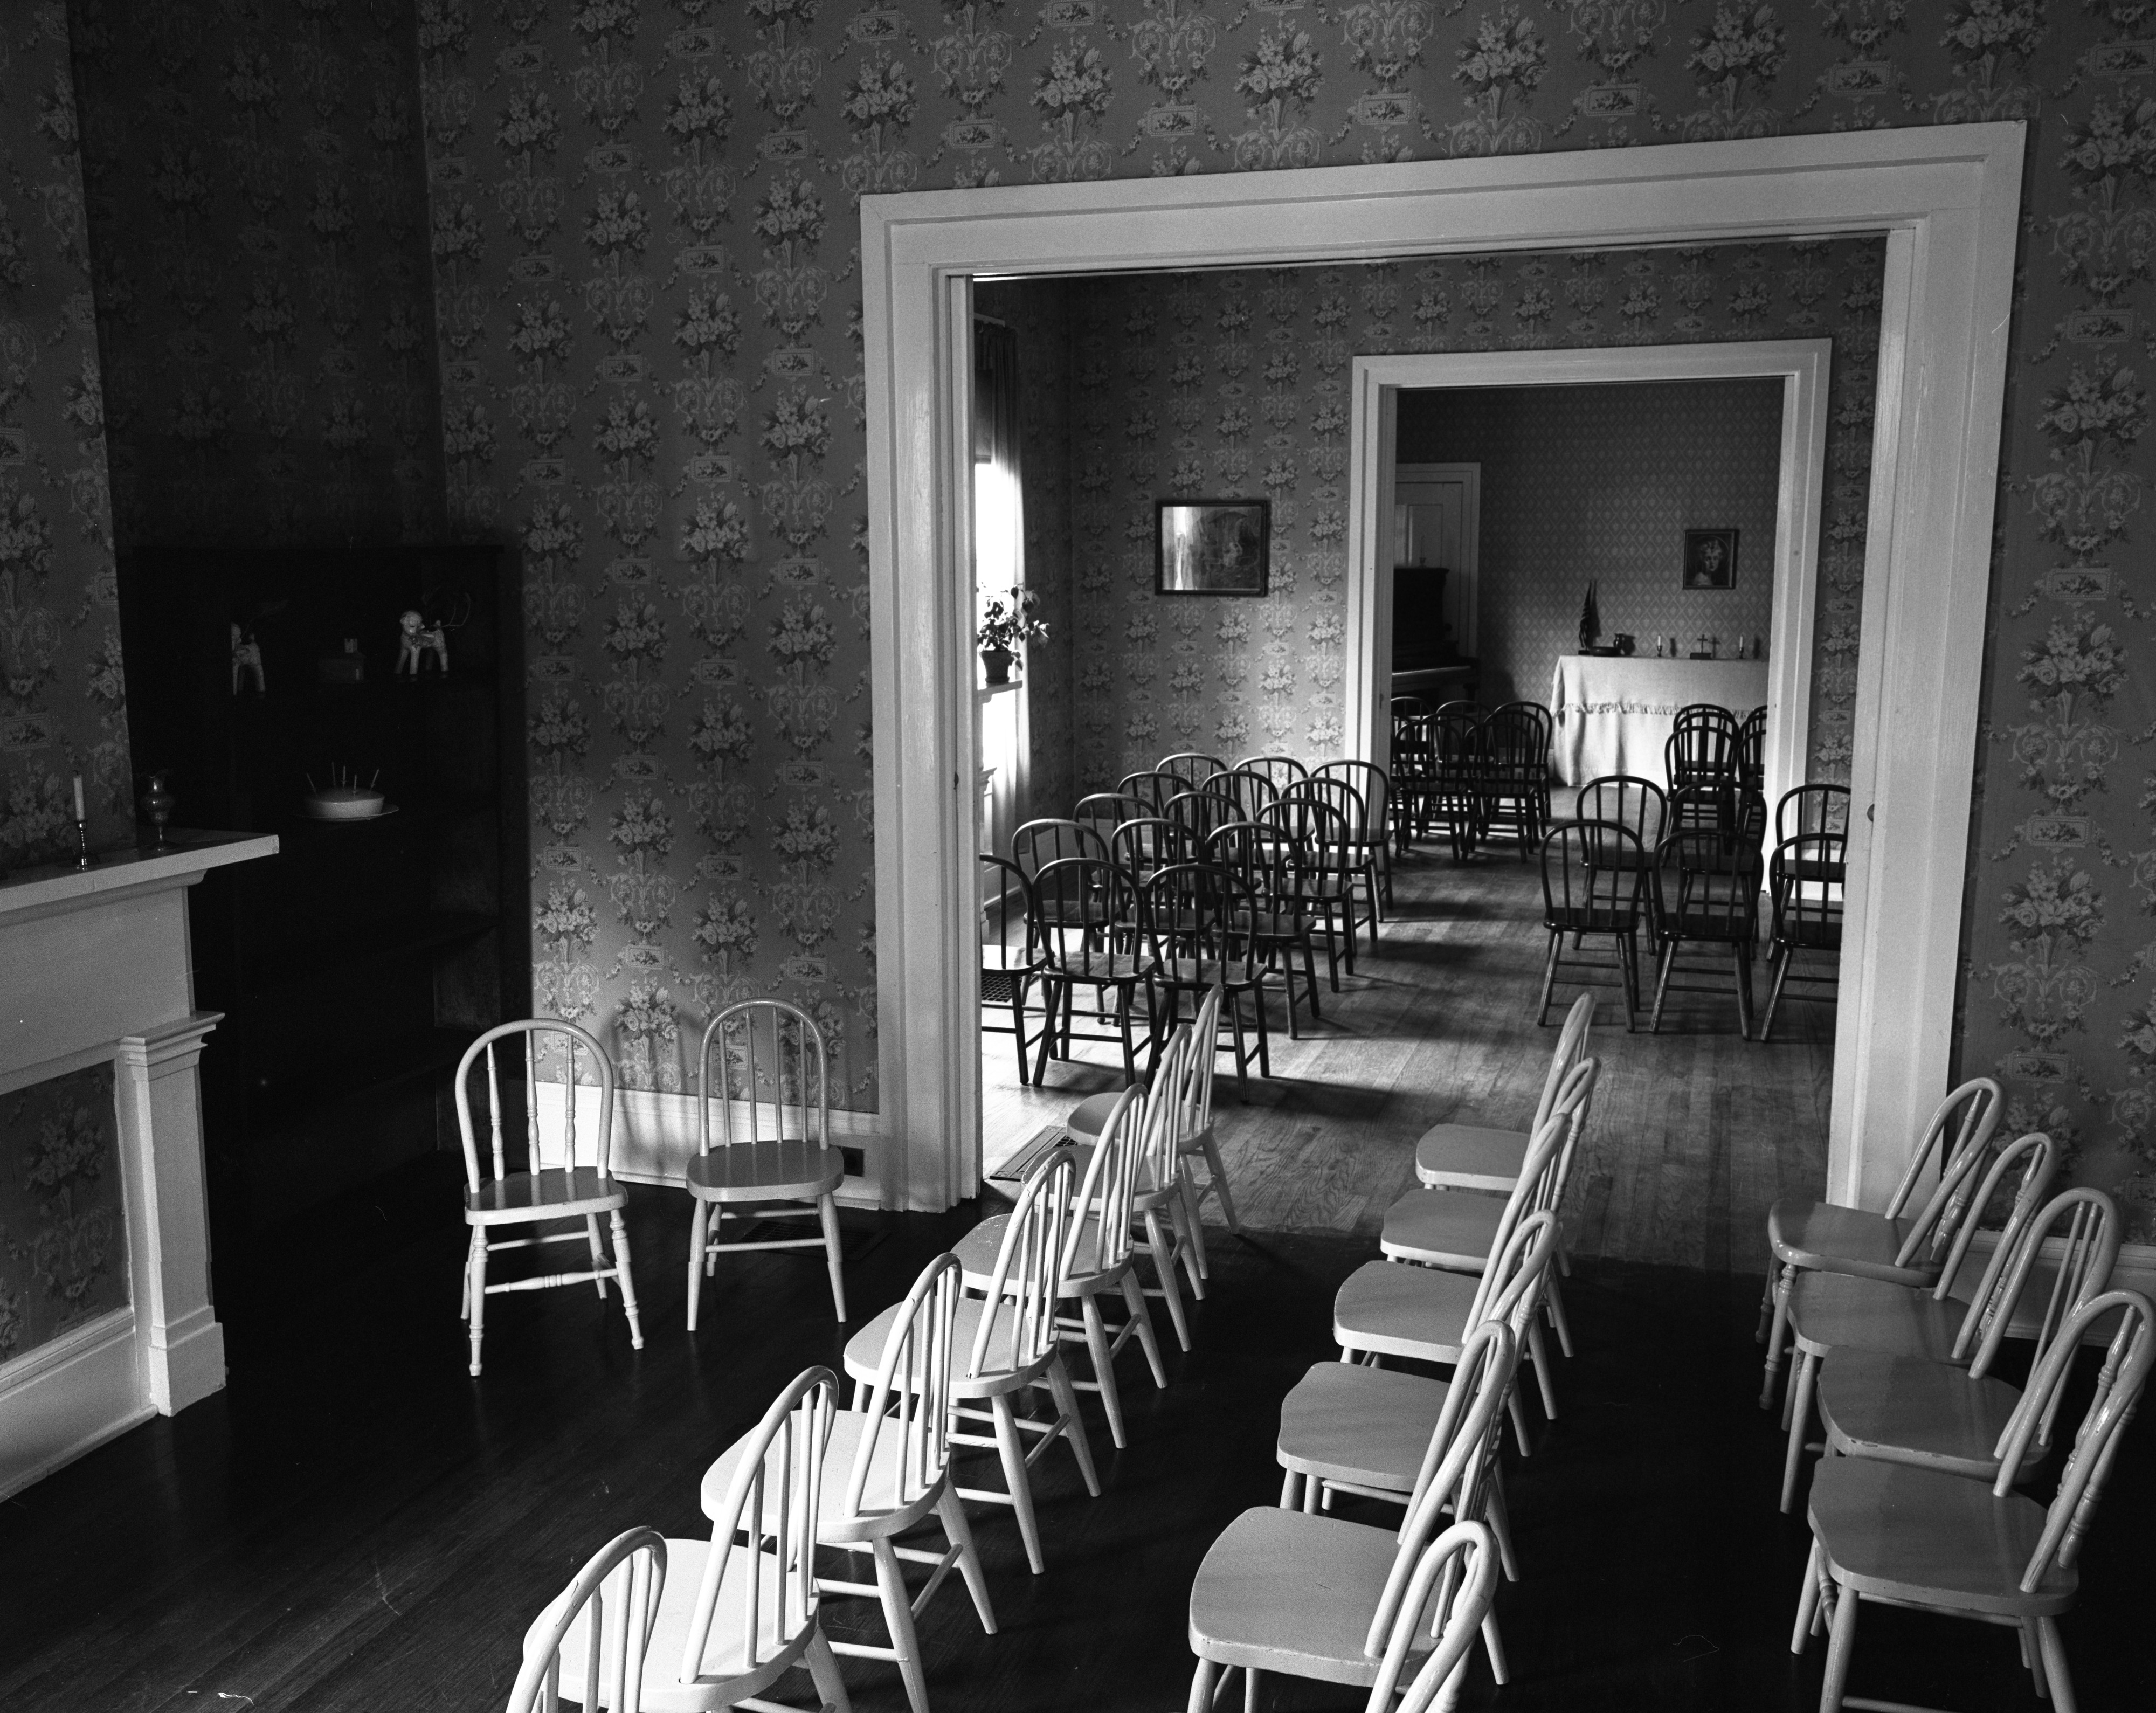 Trinity Lutheran Church's Remodeled Church House Interior, October 1951 image